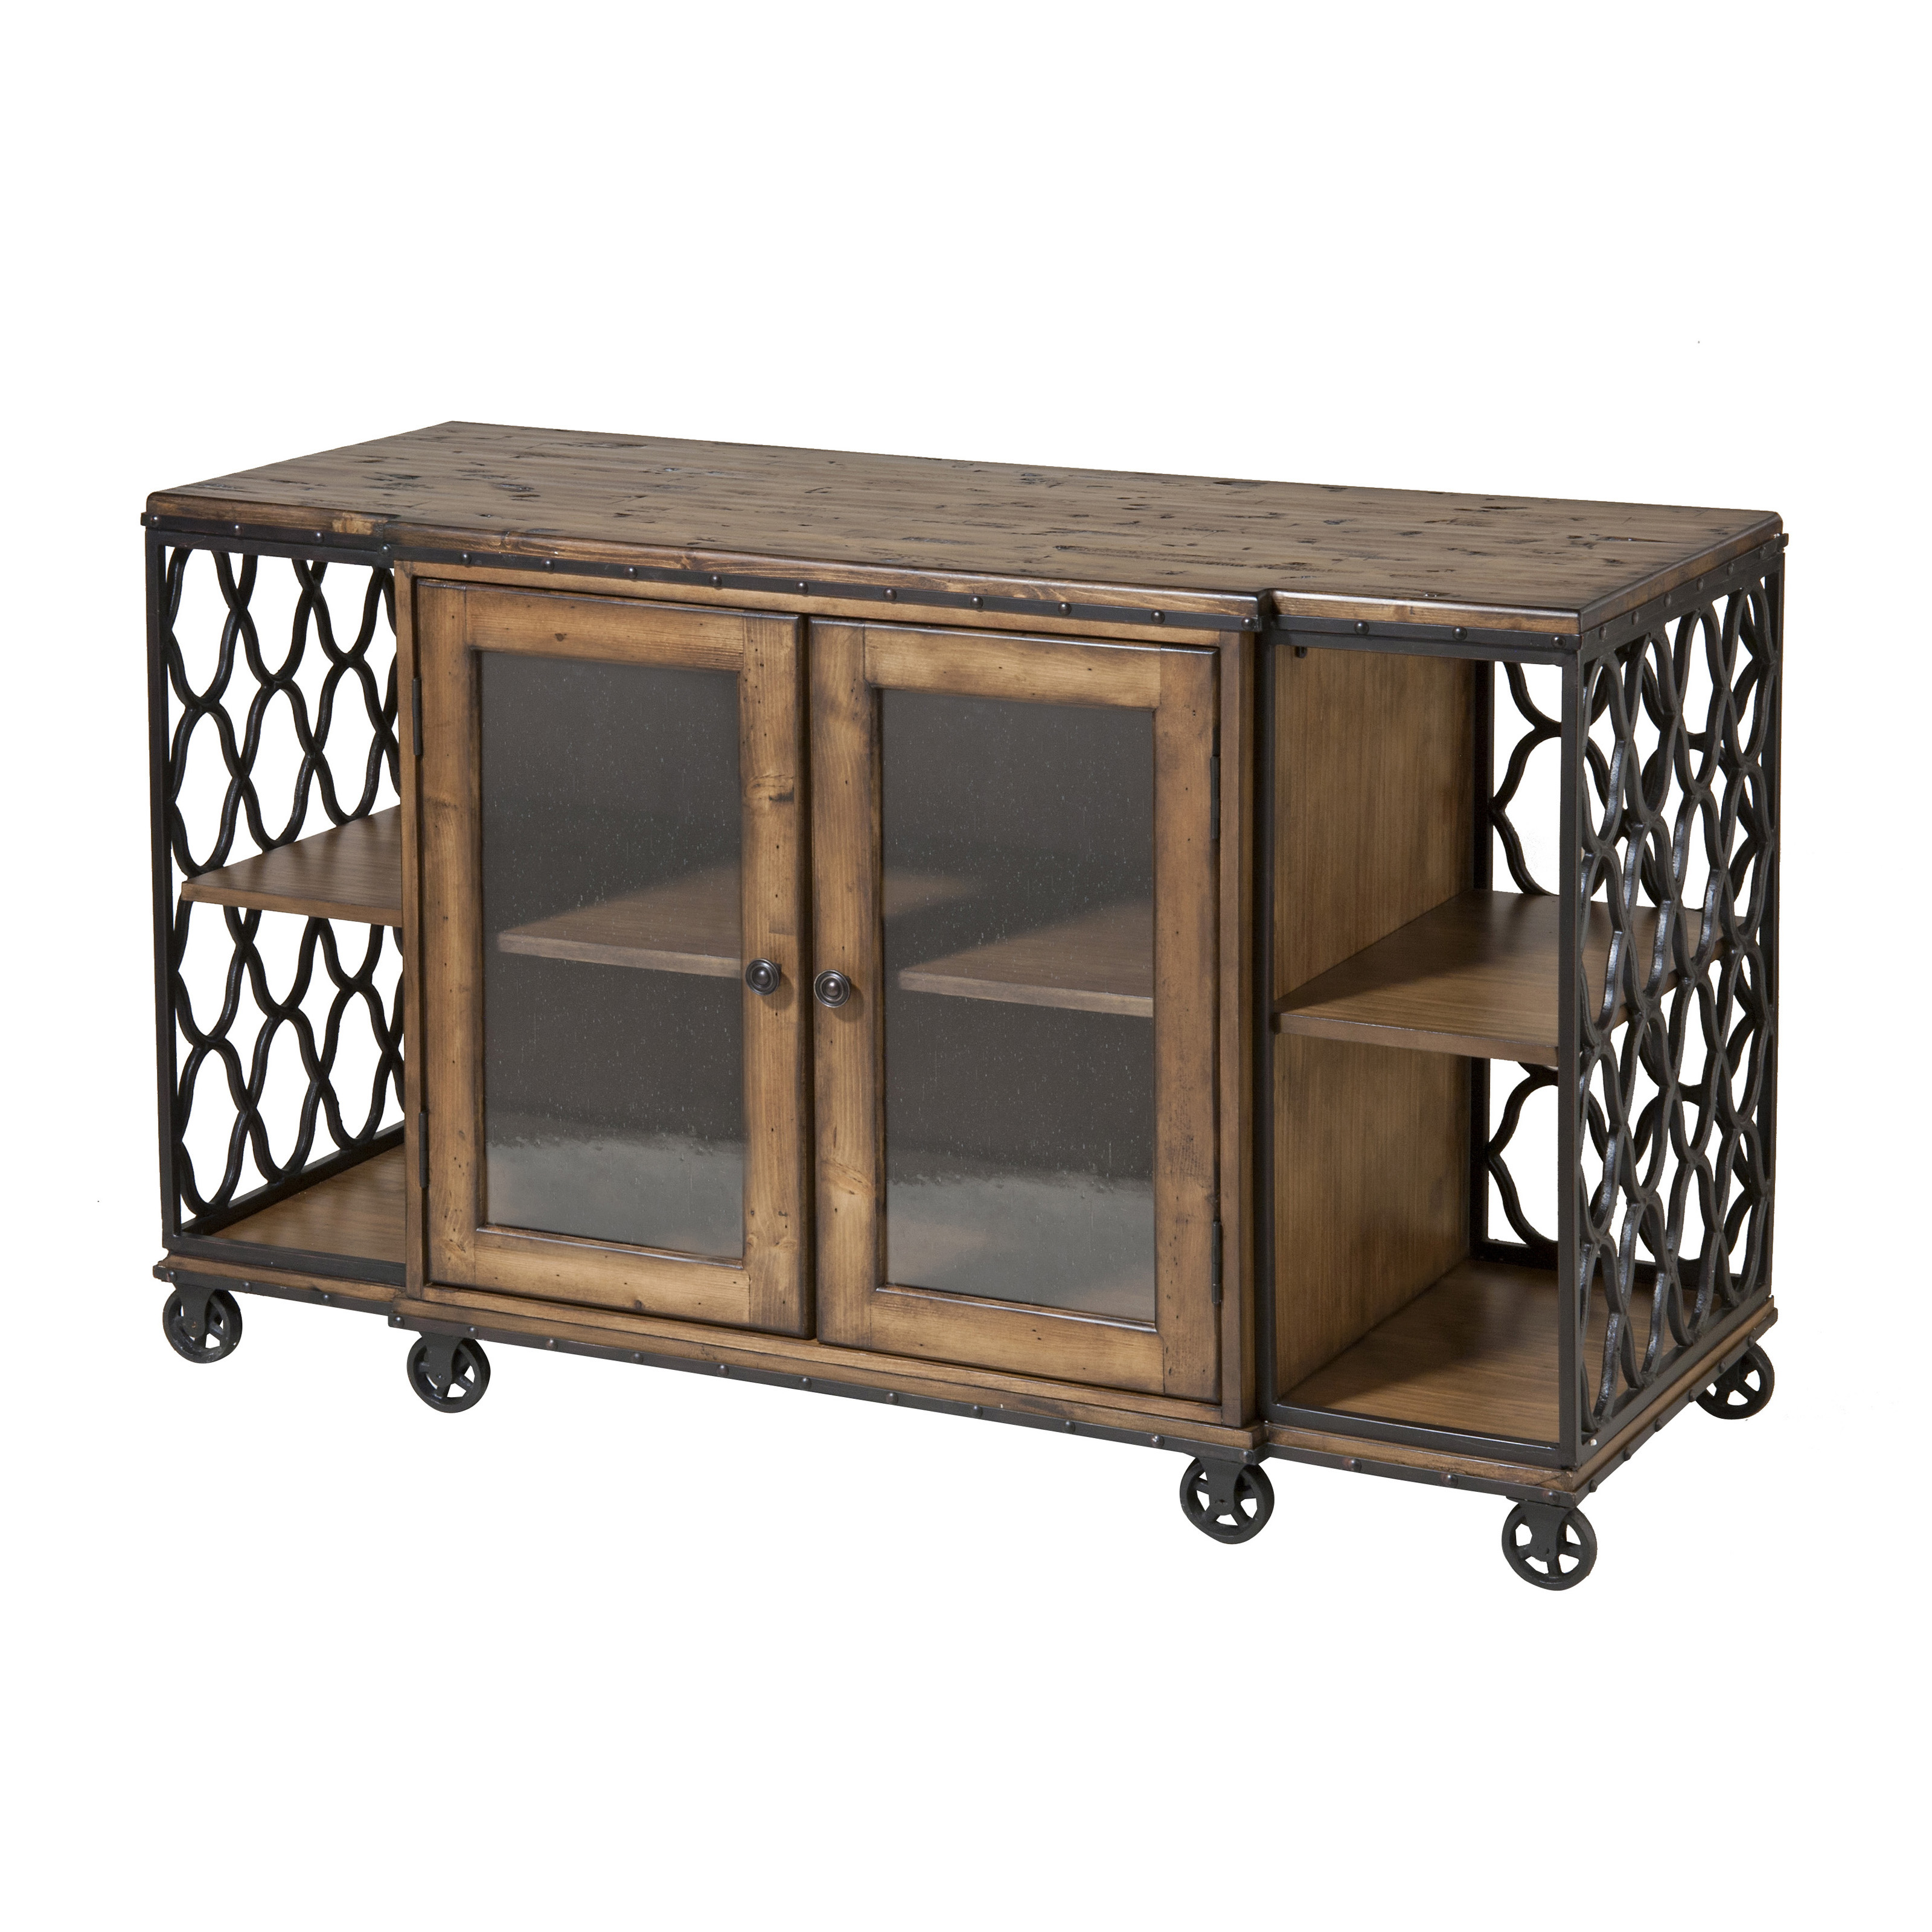 Stein world jane rae wood metal media console table for Metal and wood console tables